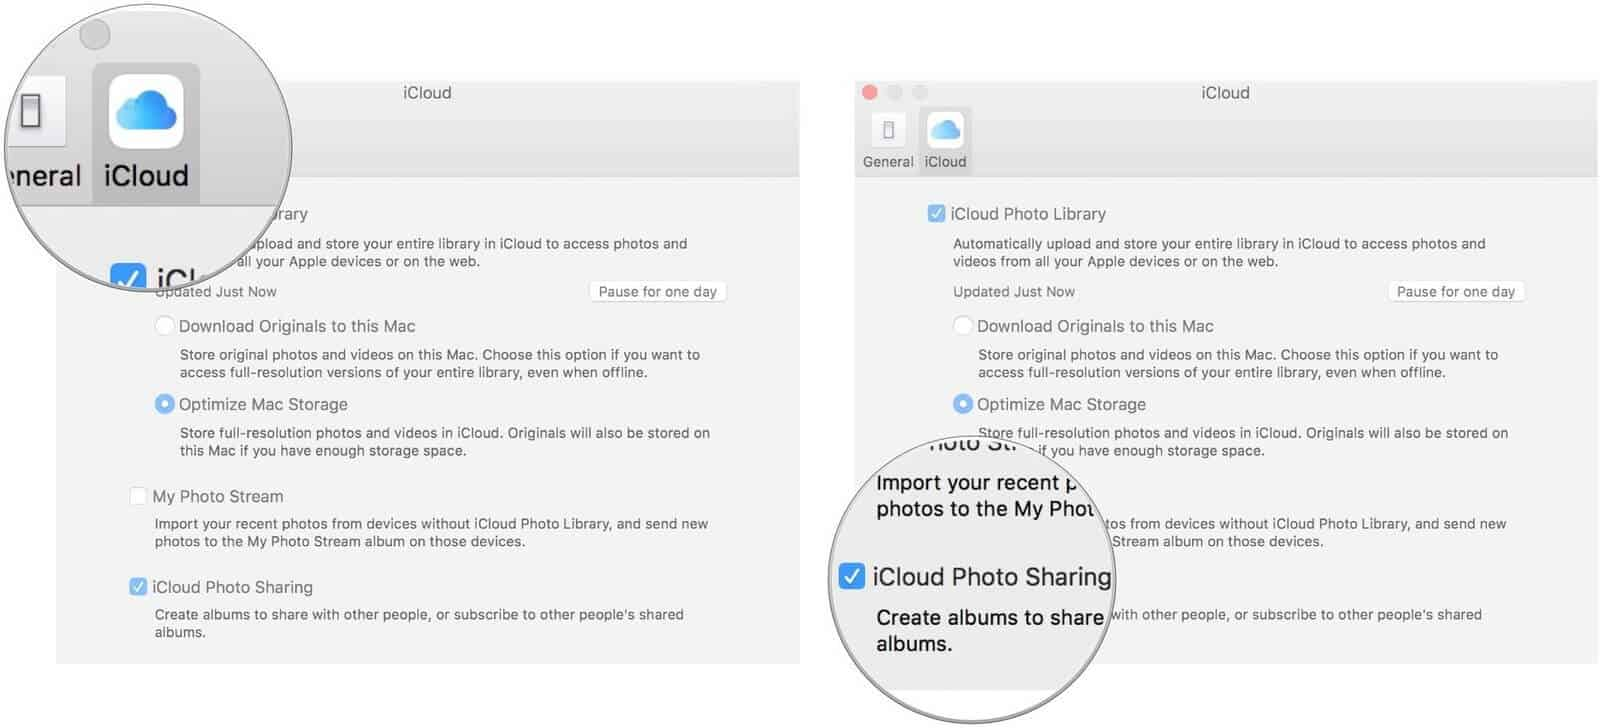 select iCloud and then check i cloud photo sharing